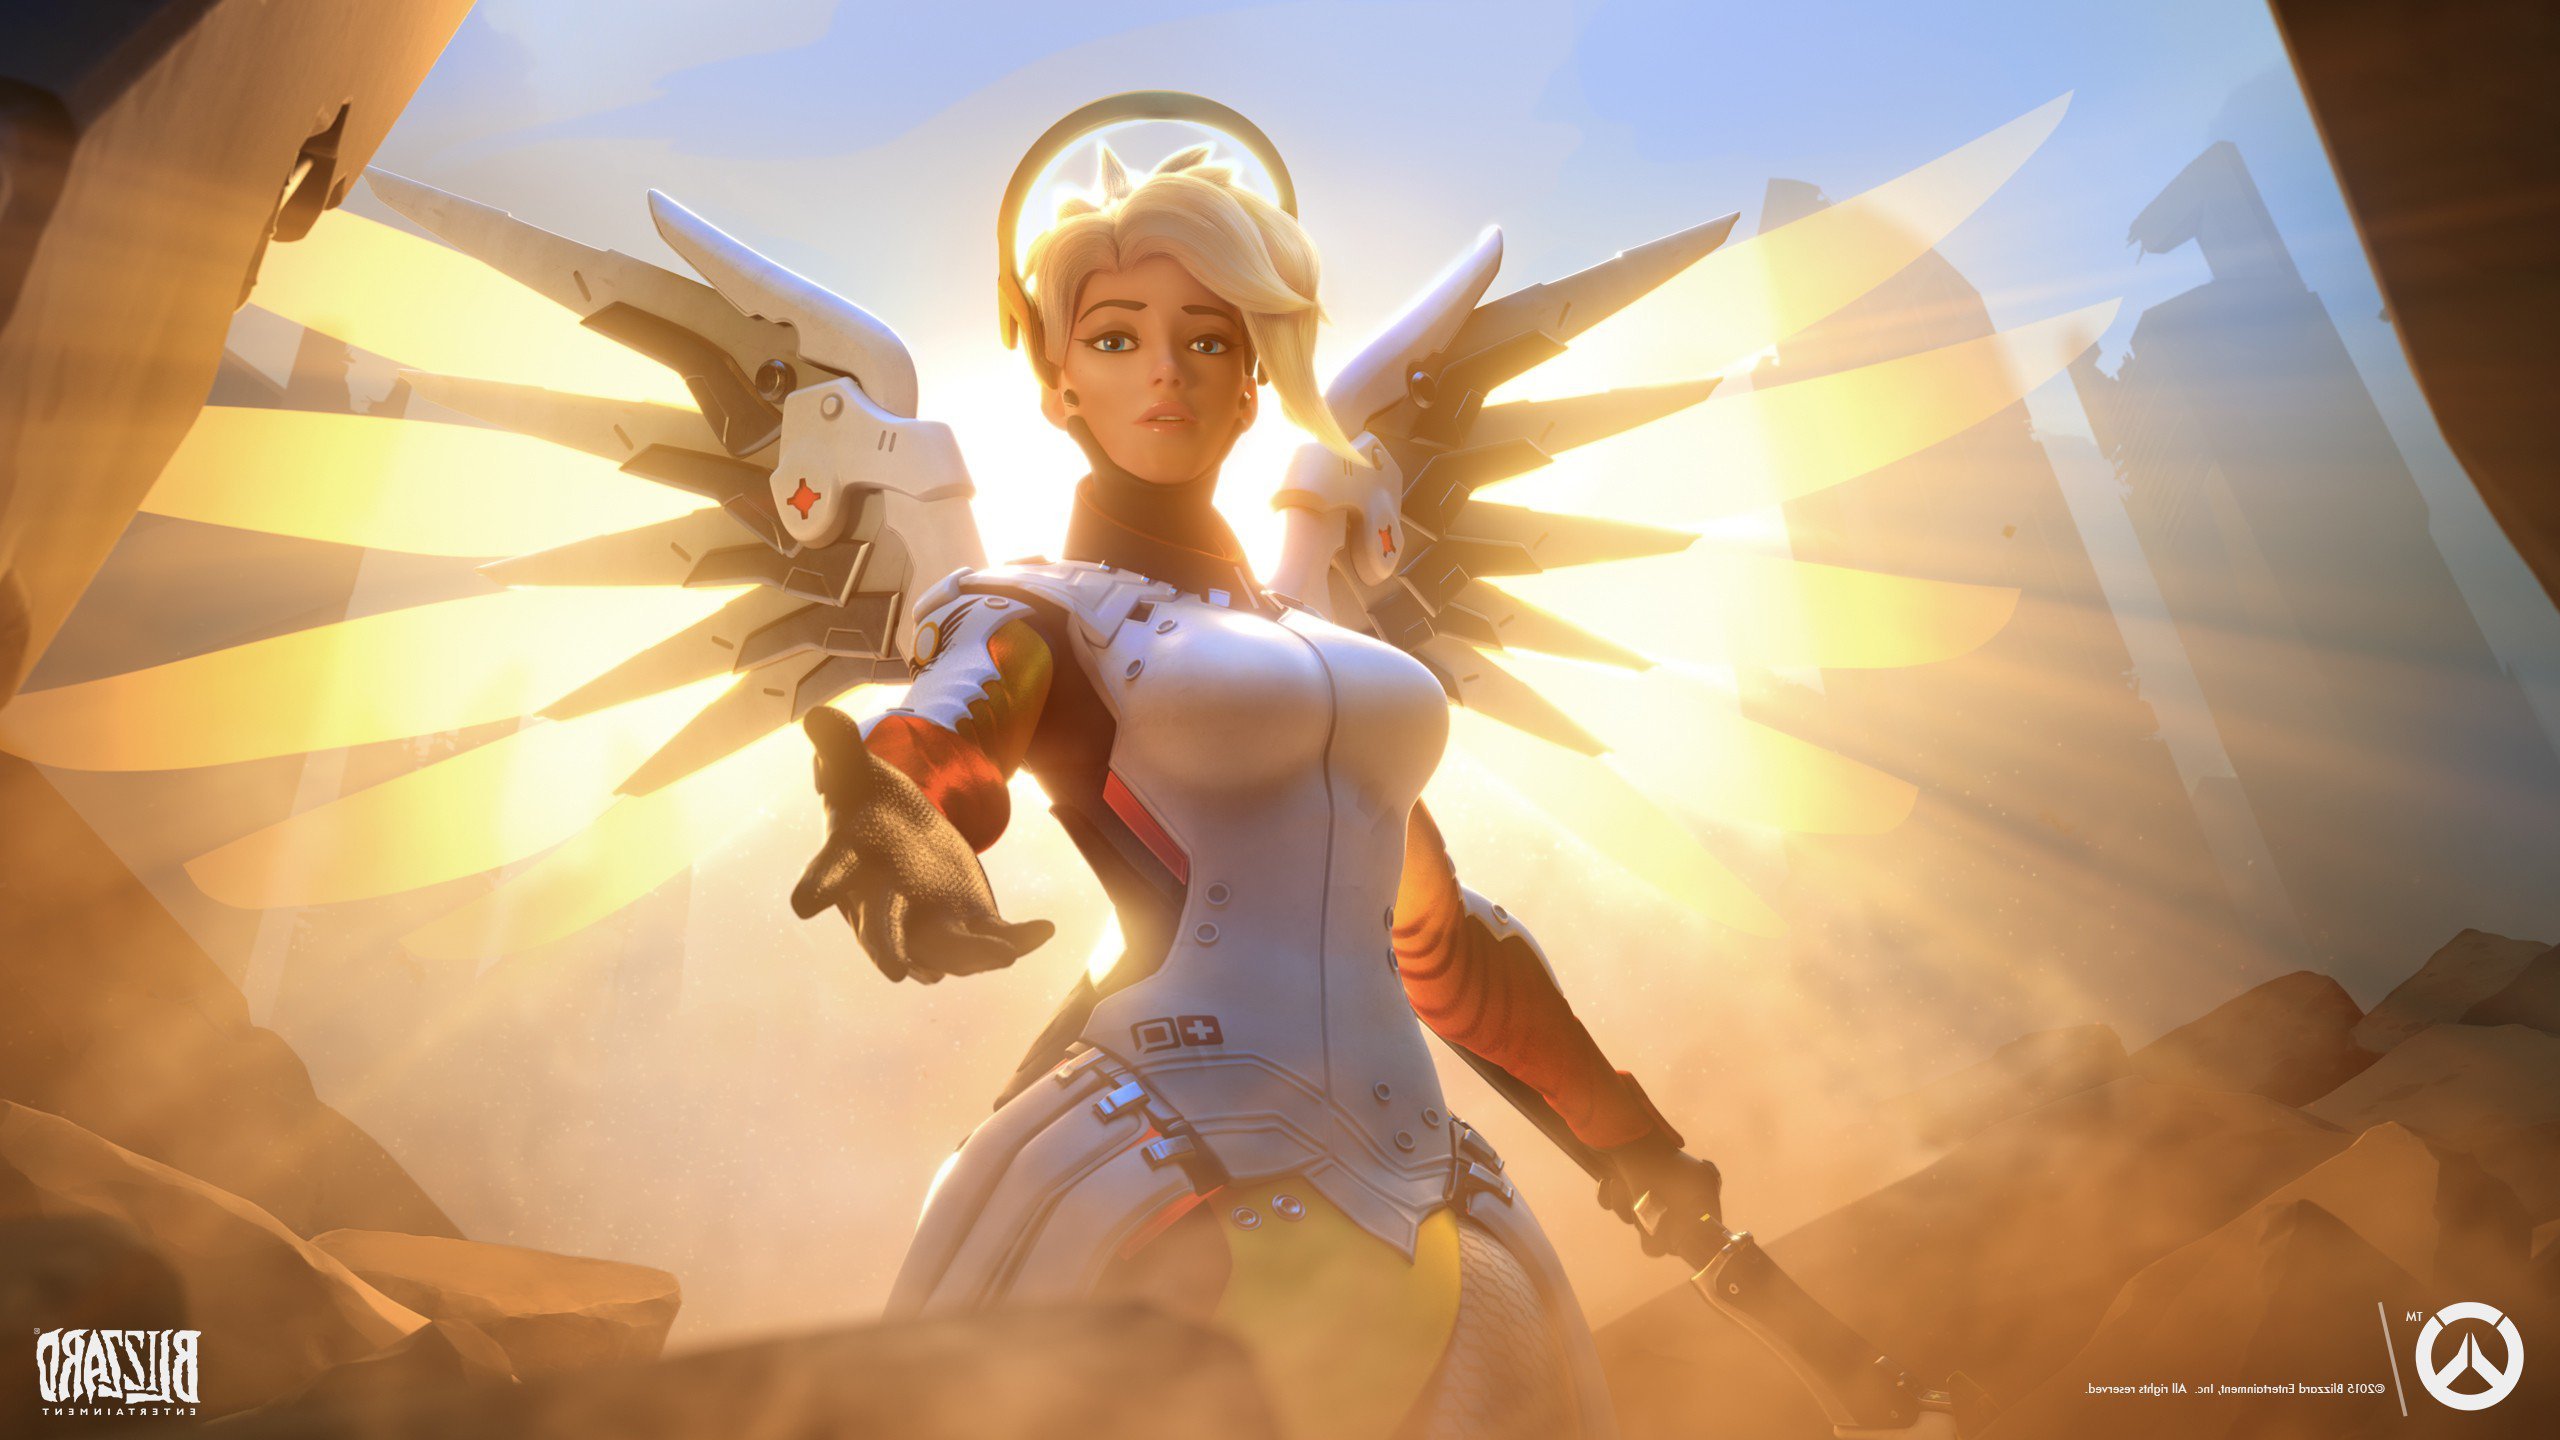 Mercy Overwatch Hd Games 4k Wallpapers Images Backgrounds Photos And Pictures